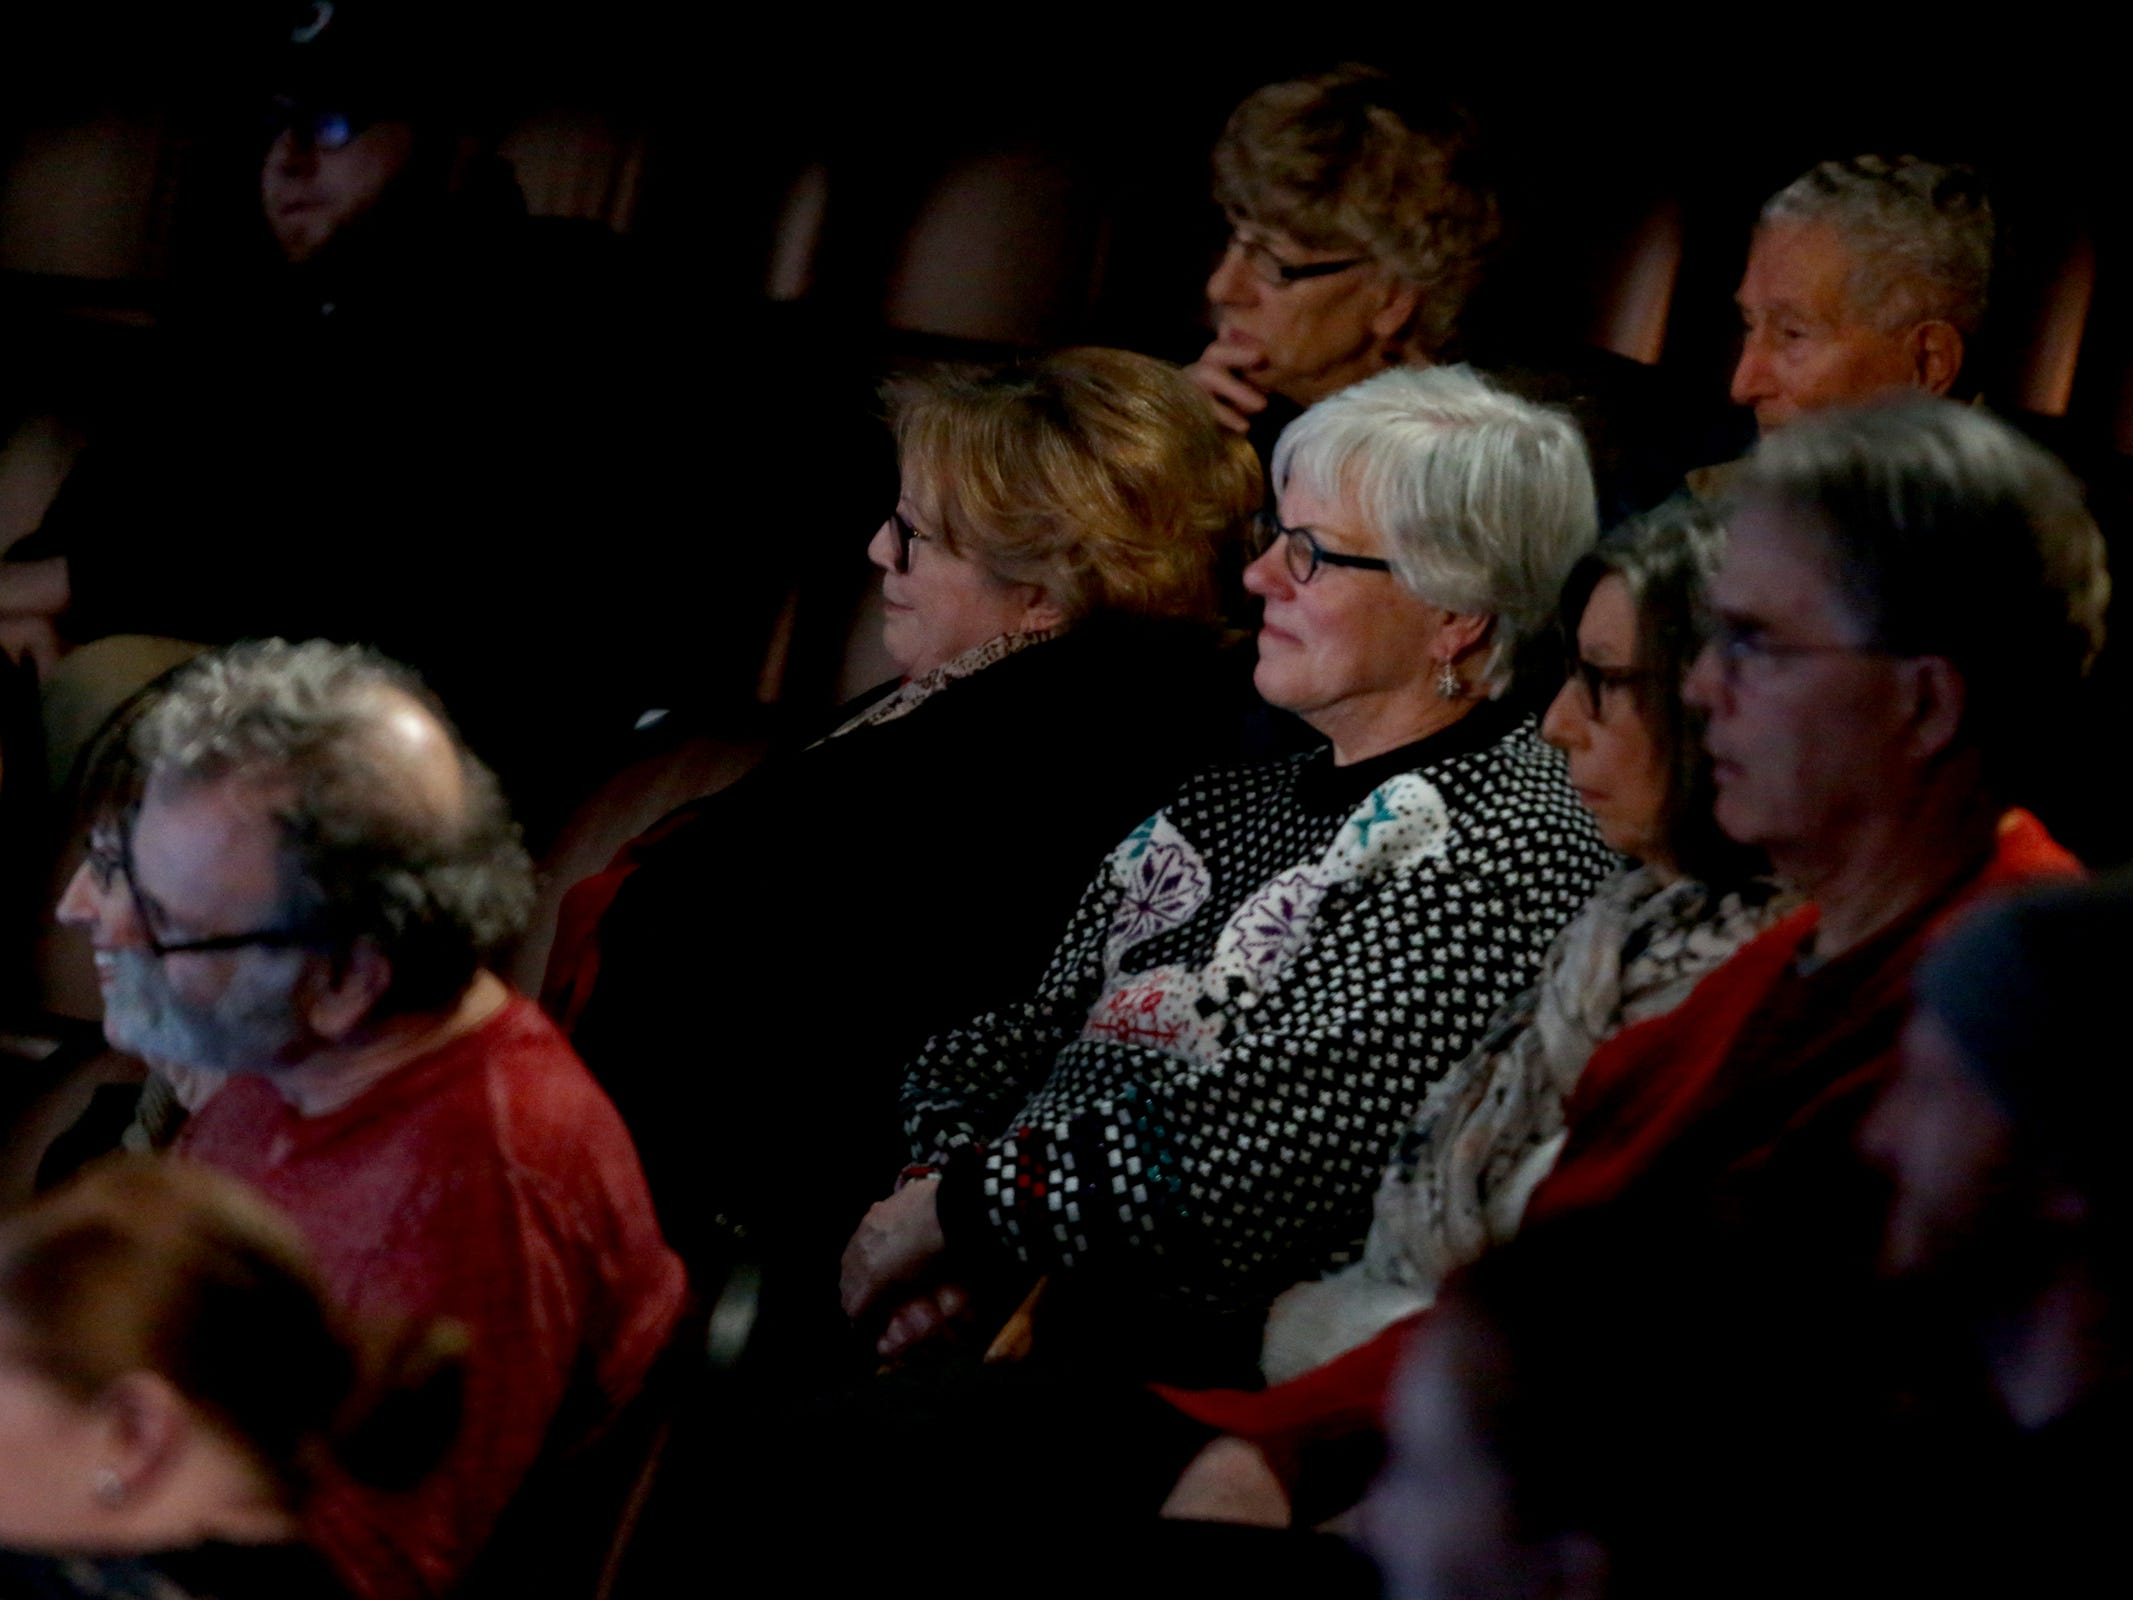 The audience listens as Salem Storytellers Project presents Romance, or Not at the Pentacle Theatre in Salem on Tuesday, Feb. 5, 2019.